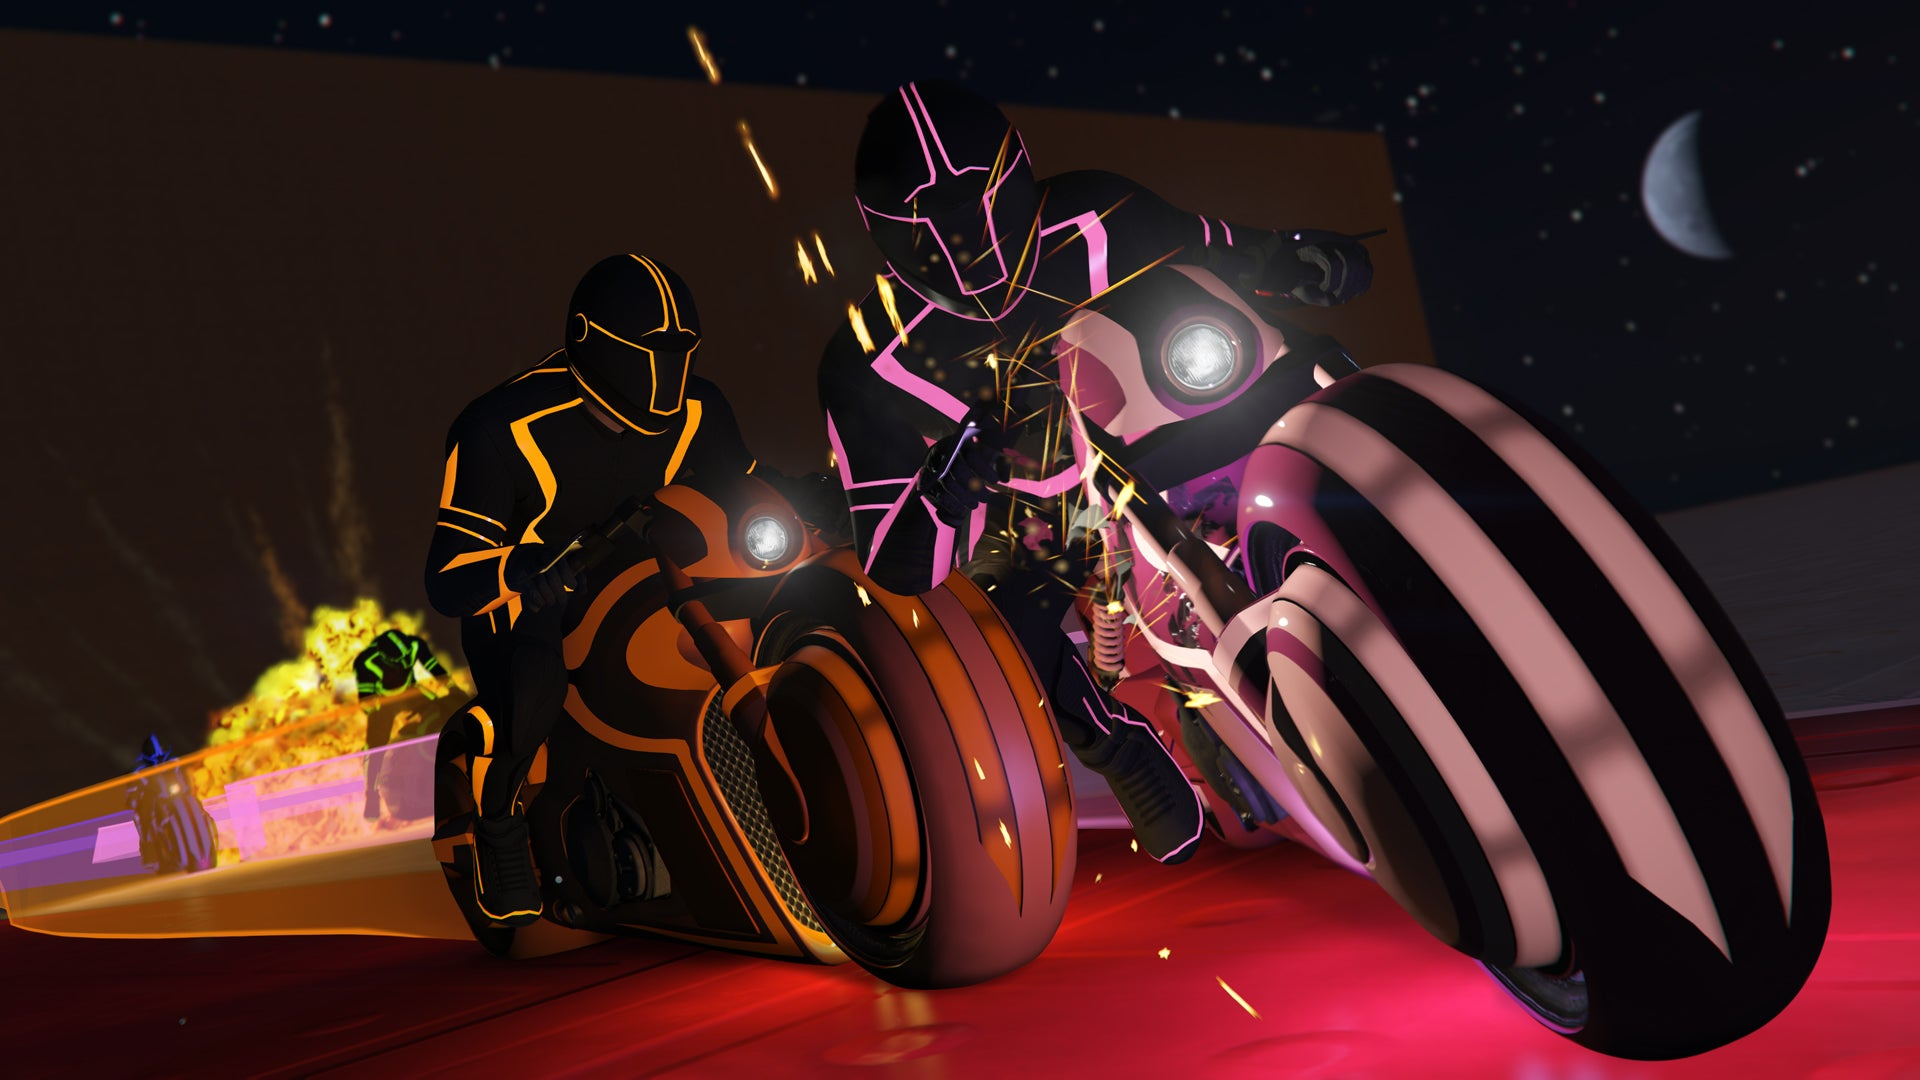 GTA Online, Now With Tron-Style Lightcycle Battles